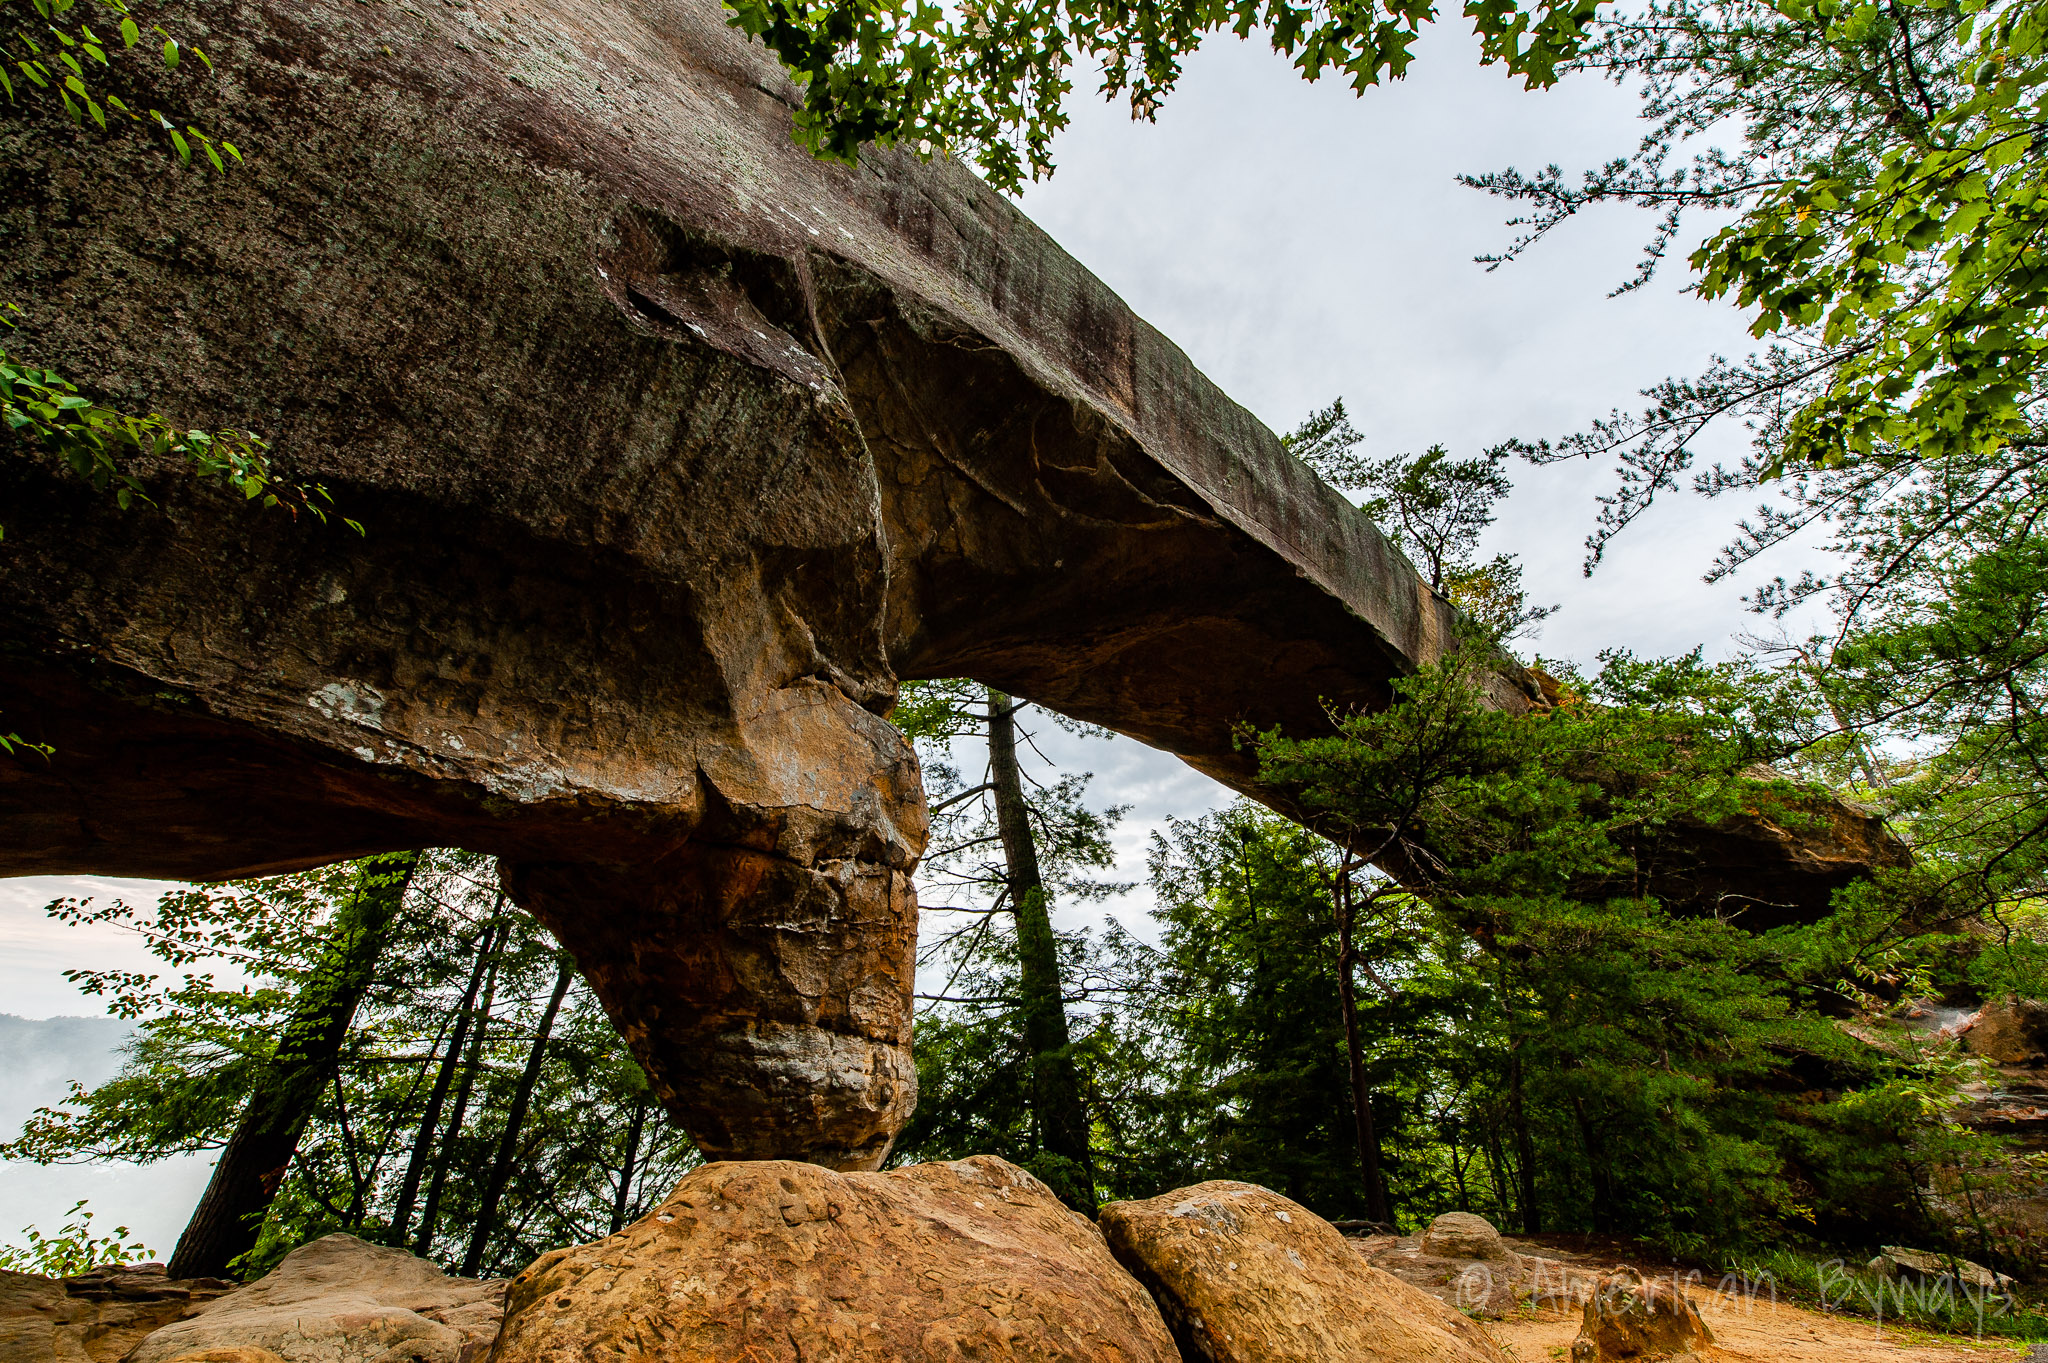 Sky Bridge Arch at Red River Gorge